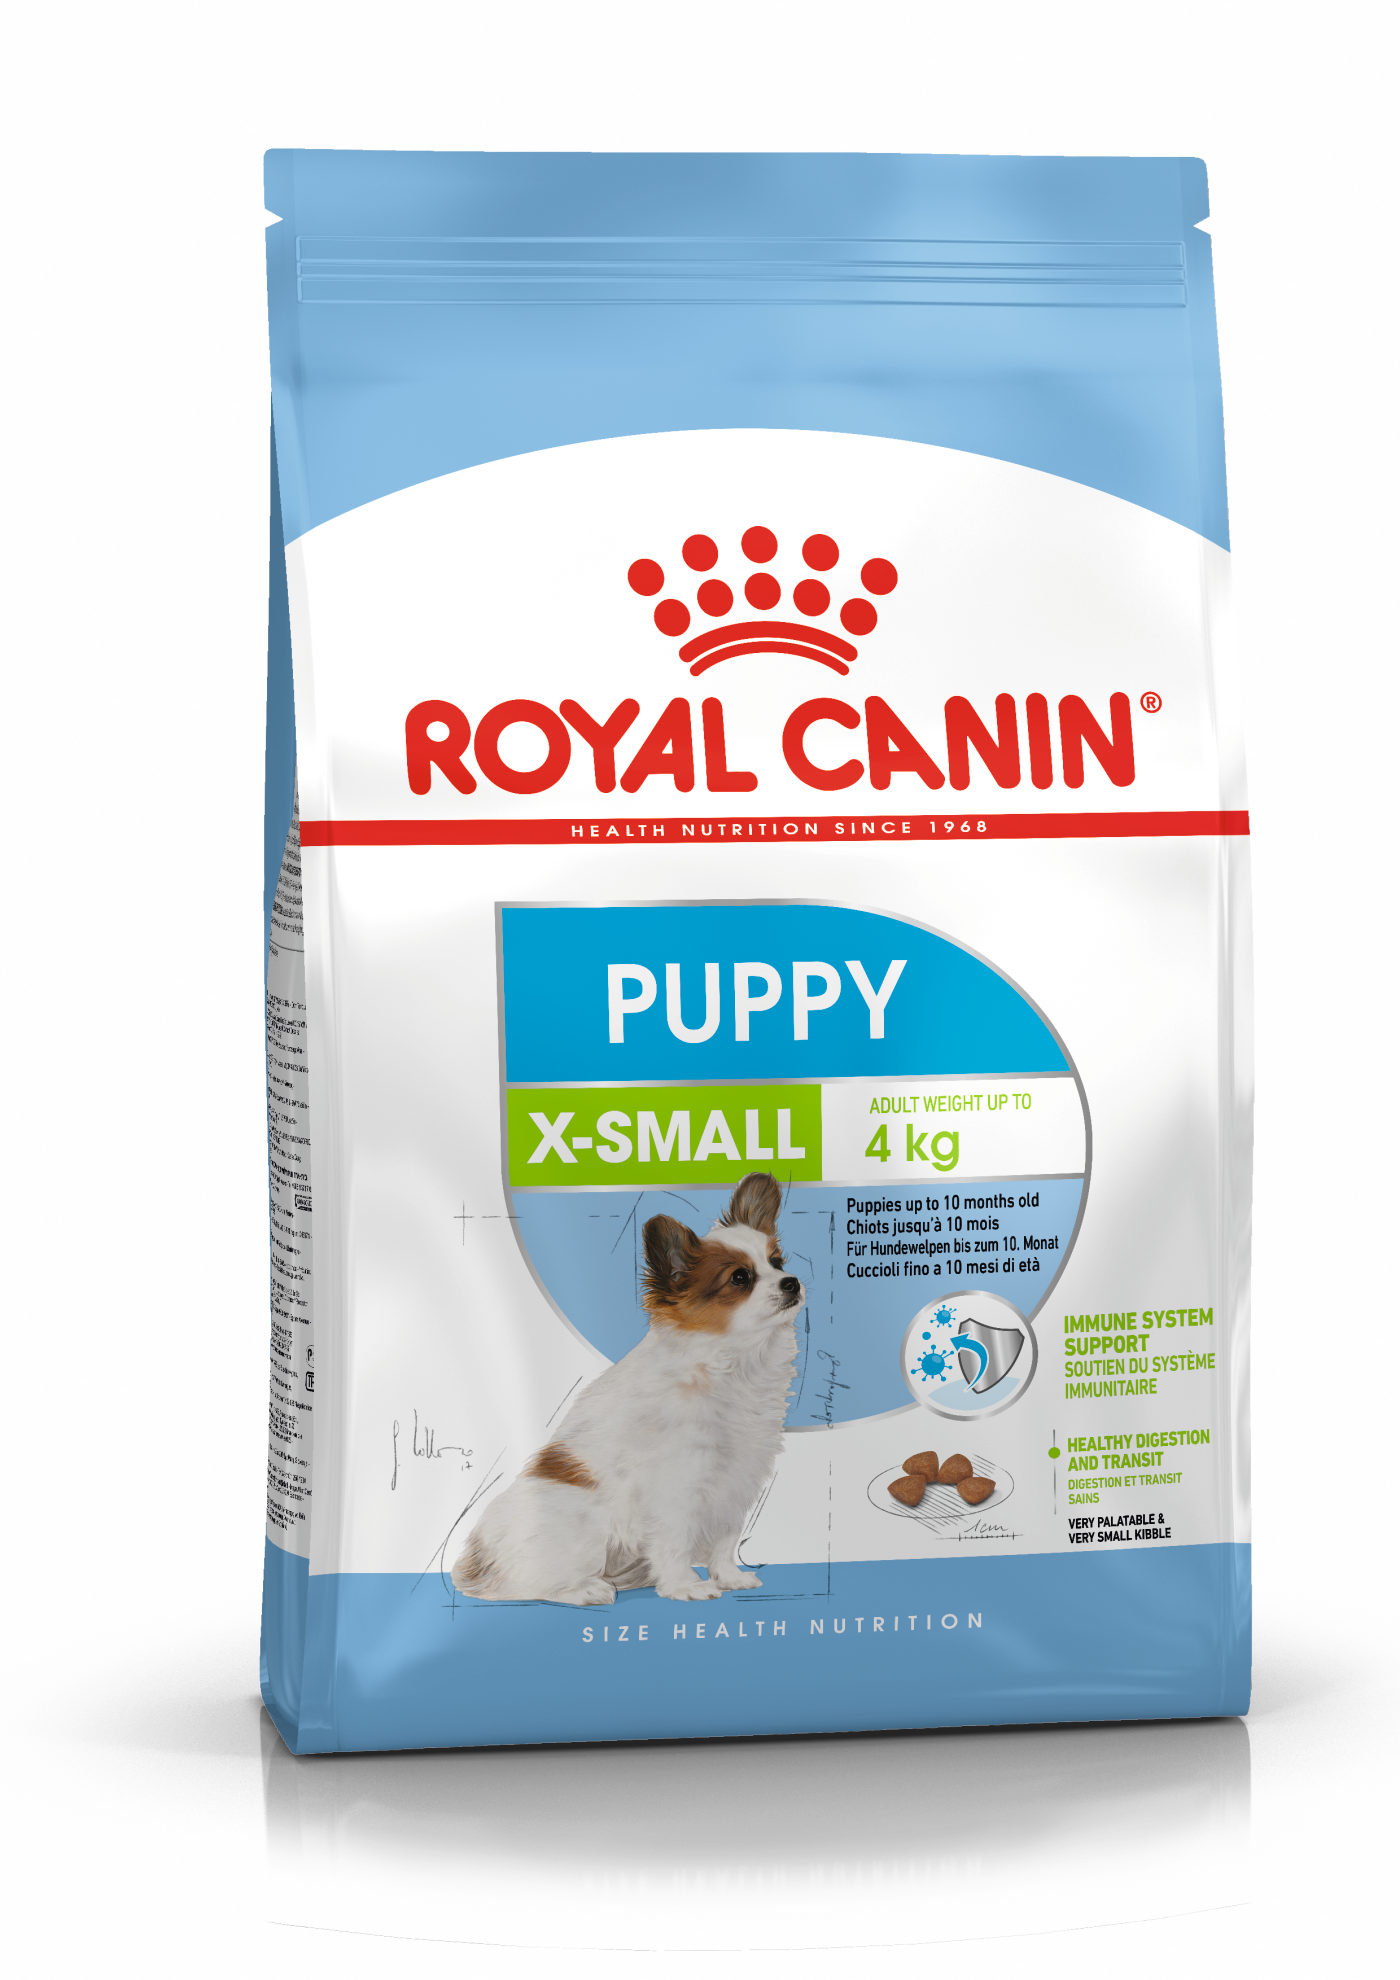 royal canin measuring cup guide